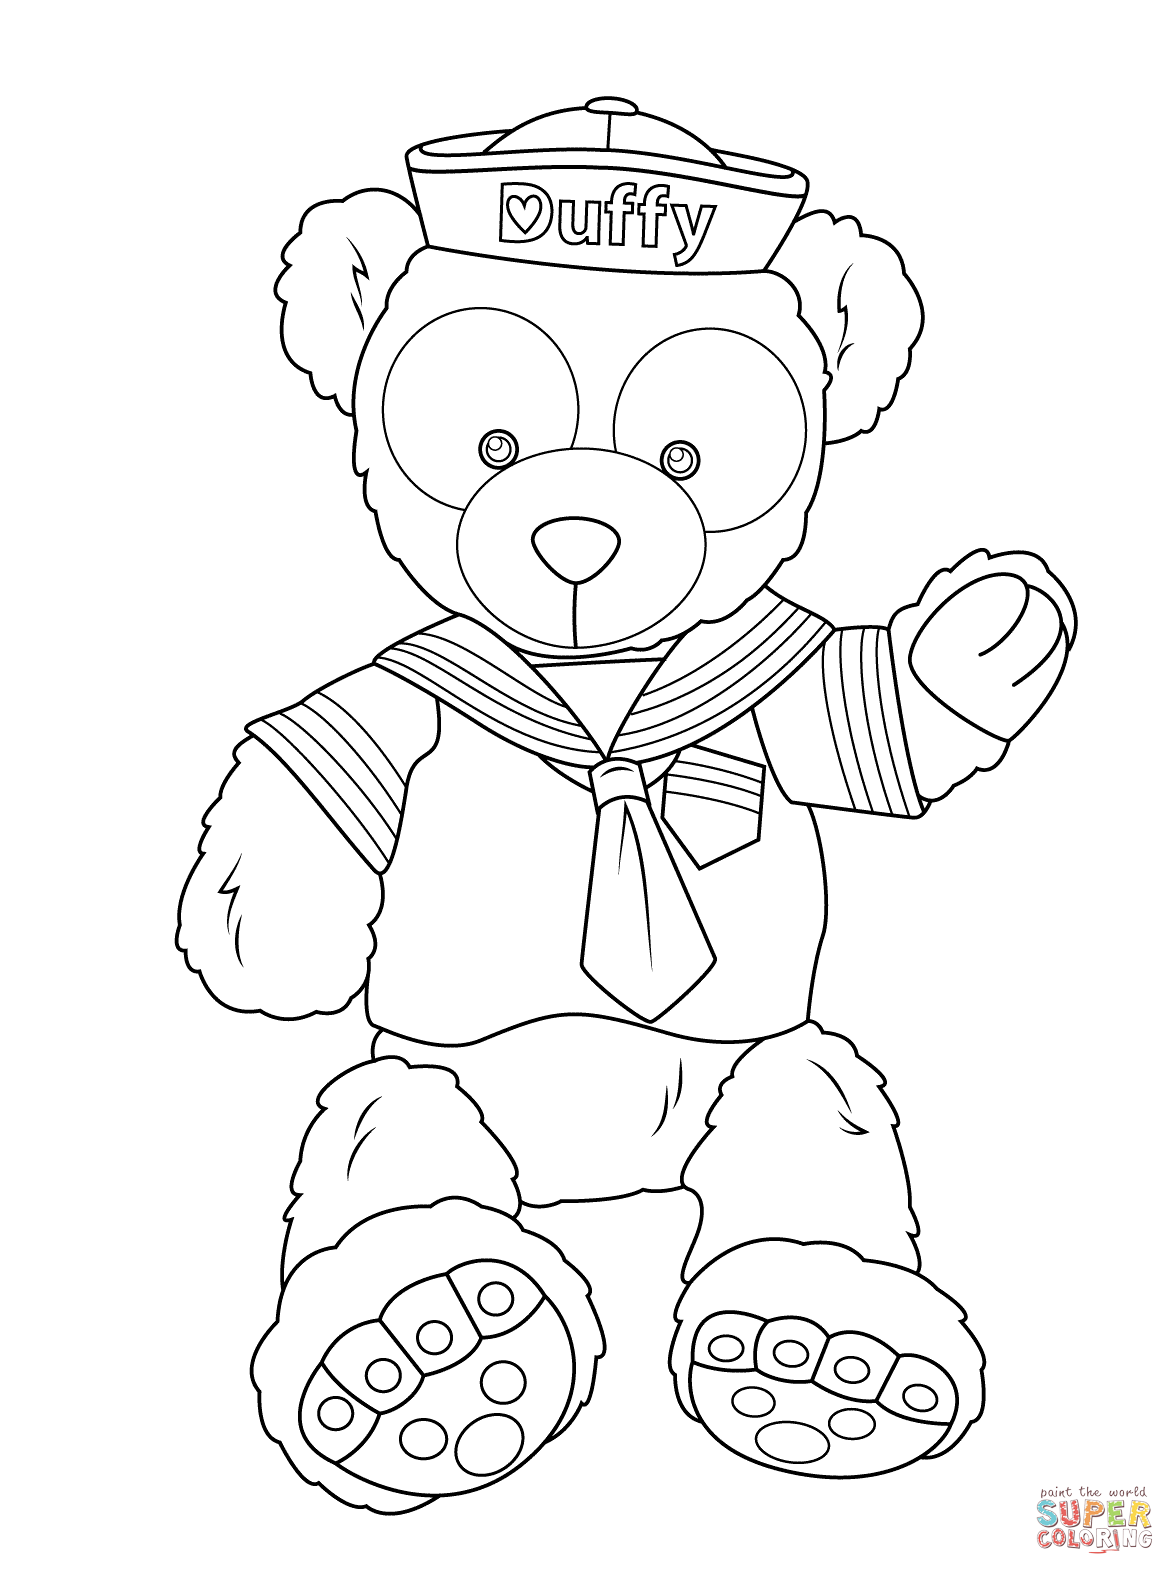 Free Ipad Coloring Pages Download Free Clip Art Free Clip Art On Clipart Library